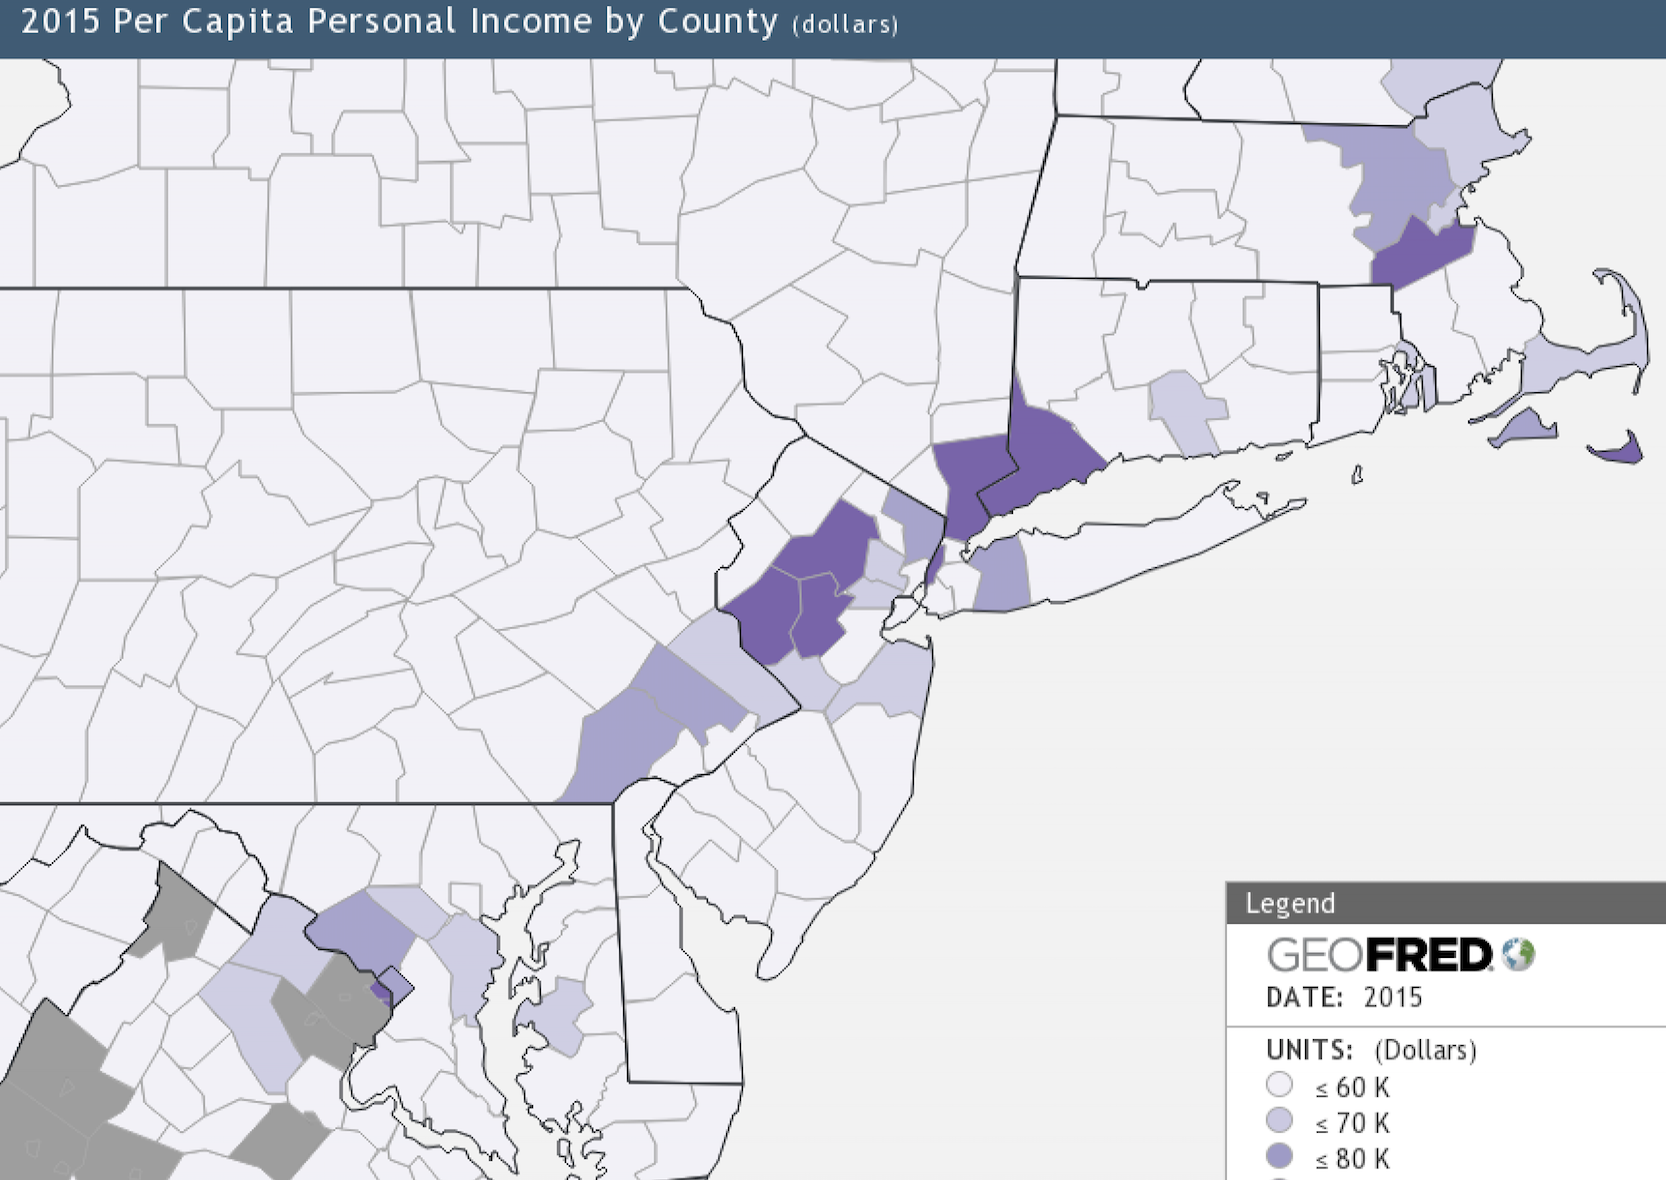 Zones Of Poverty And Affluence In America Policy Tensor - Richest us counties per capita